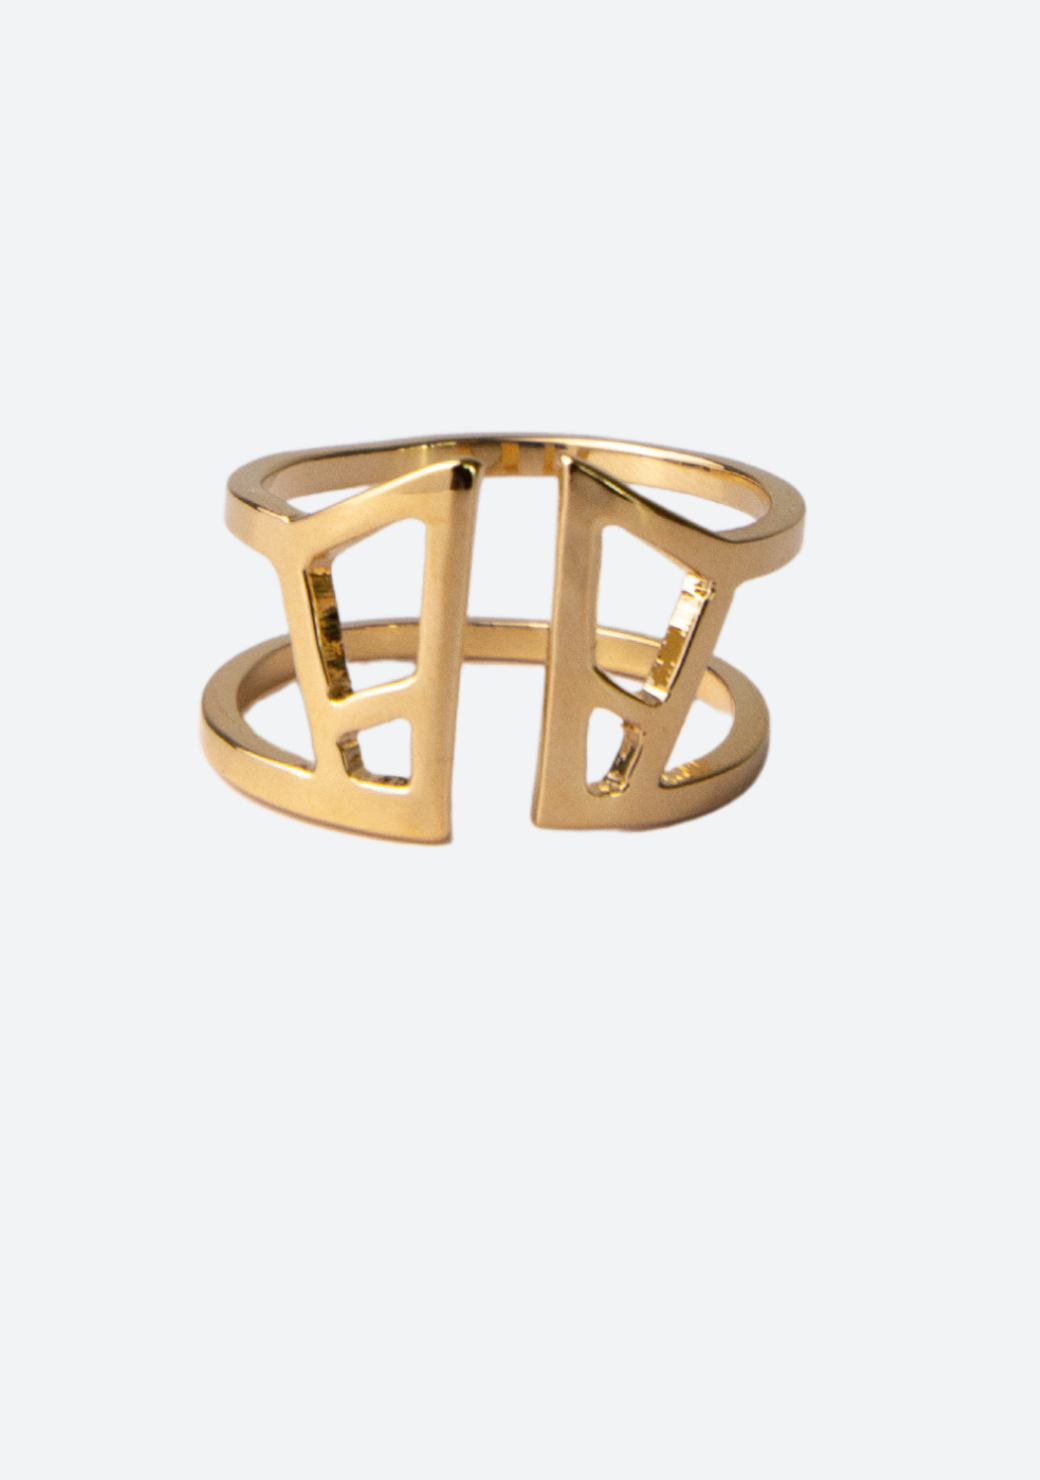 Andreas Short Ring